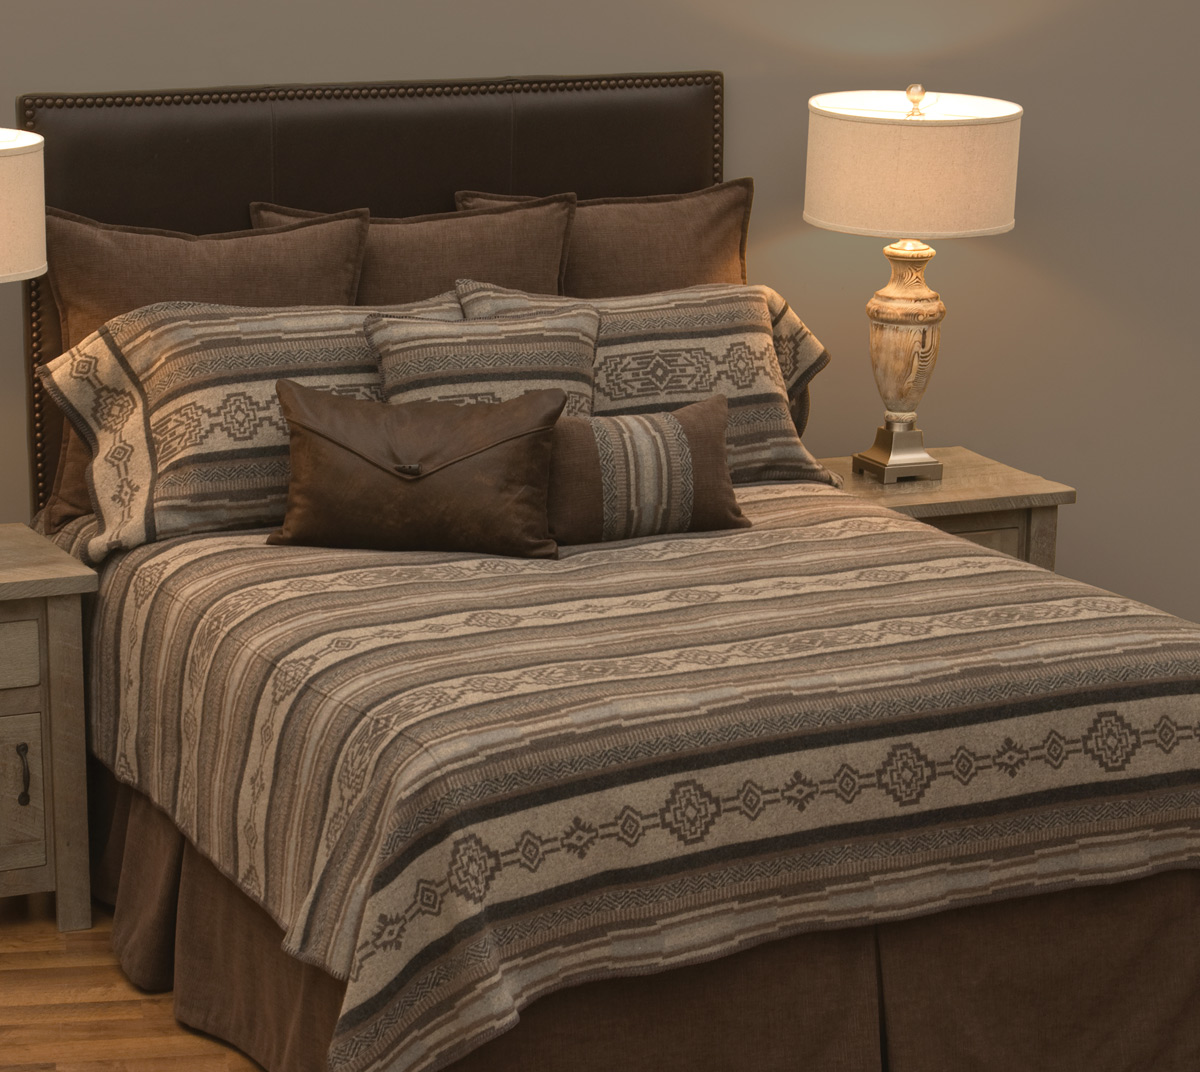 Lodge Lux Bedspread - Super King